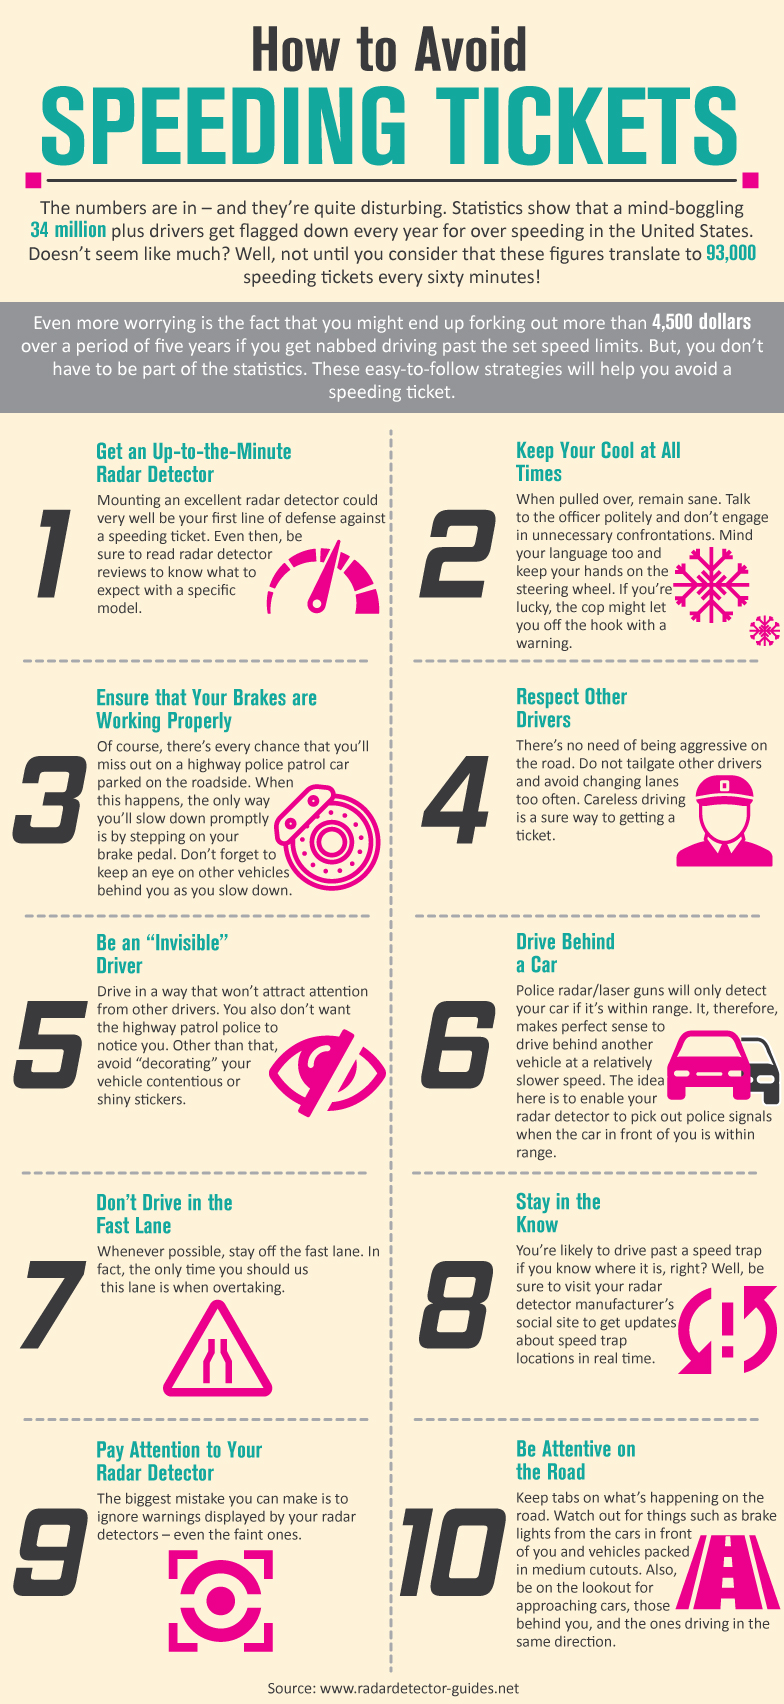 How to Avoid Speeding Tickets infographic